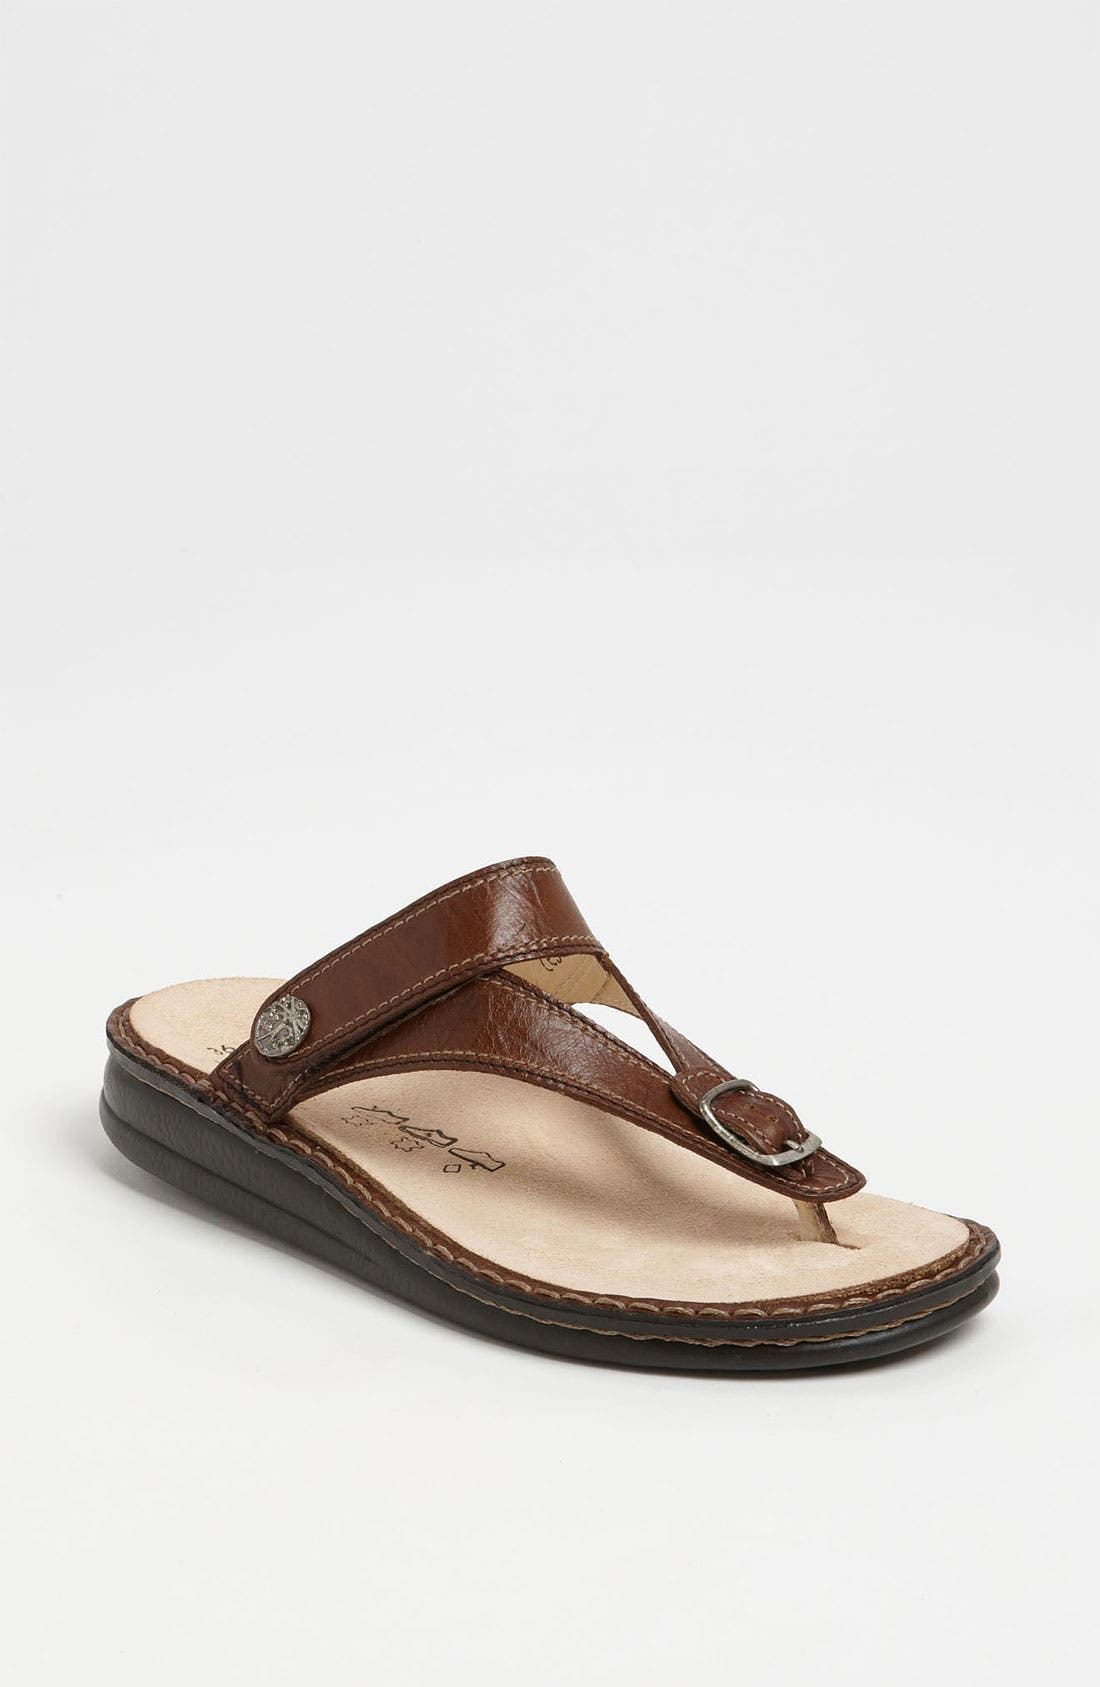 Alternate Image 1 Selected - Finn Comfort 'Alexandria' Thong Sandal